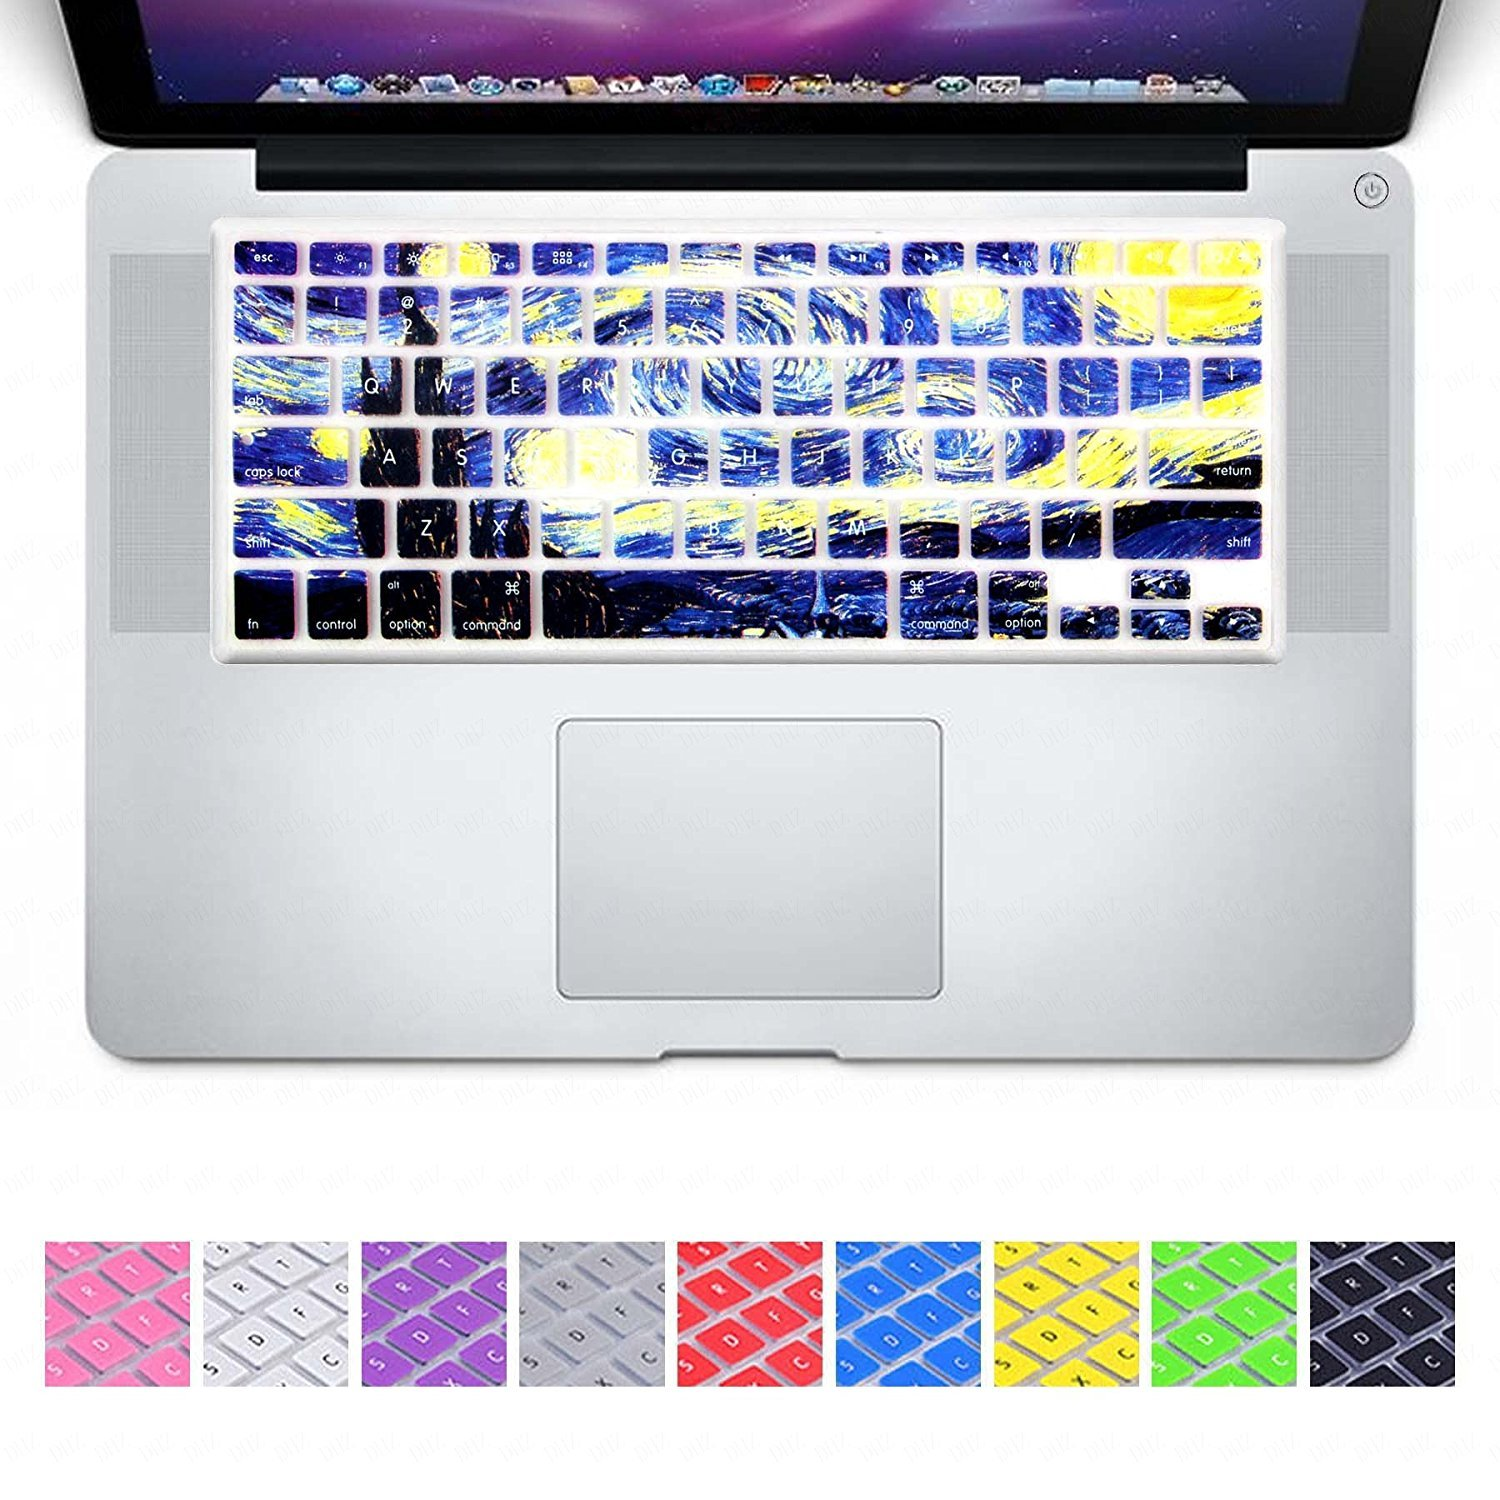 No Fit for 2018 MacBook air 13 or 2017//2016 Released New MacBook Pro 13 15 DHZ Dark Blue Gradient Keyboard Cover Silicone Skin for 2015 or Older Version MacBook Air 13 MacBook Pro 13 15 inch